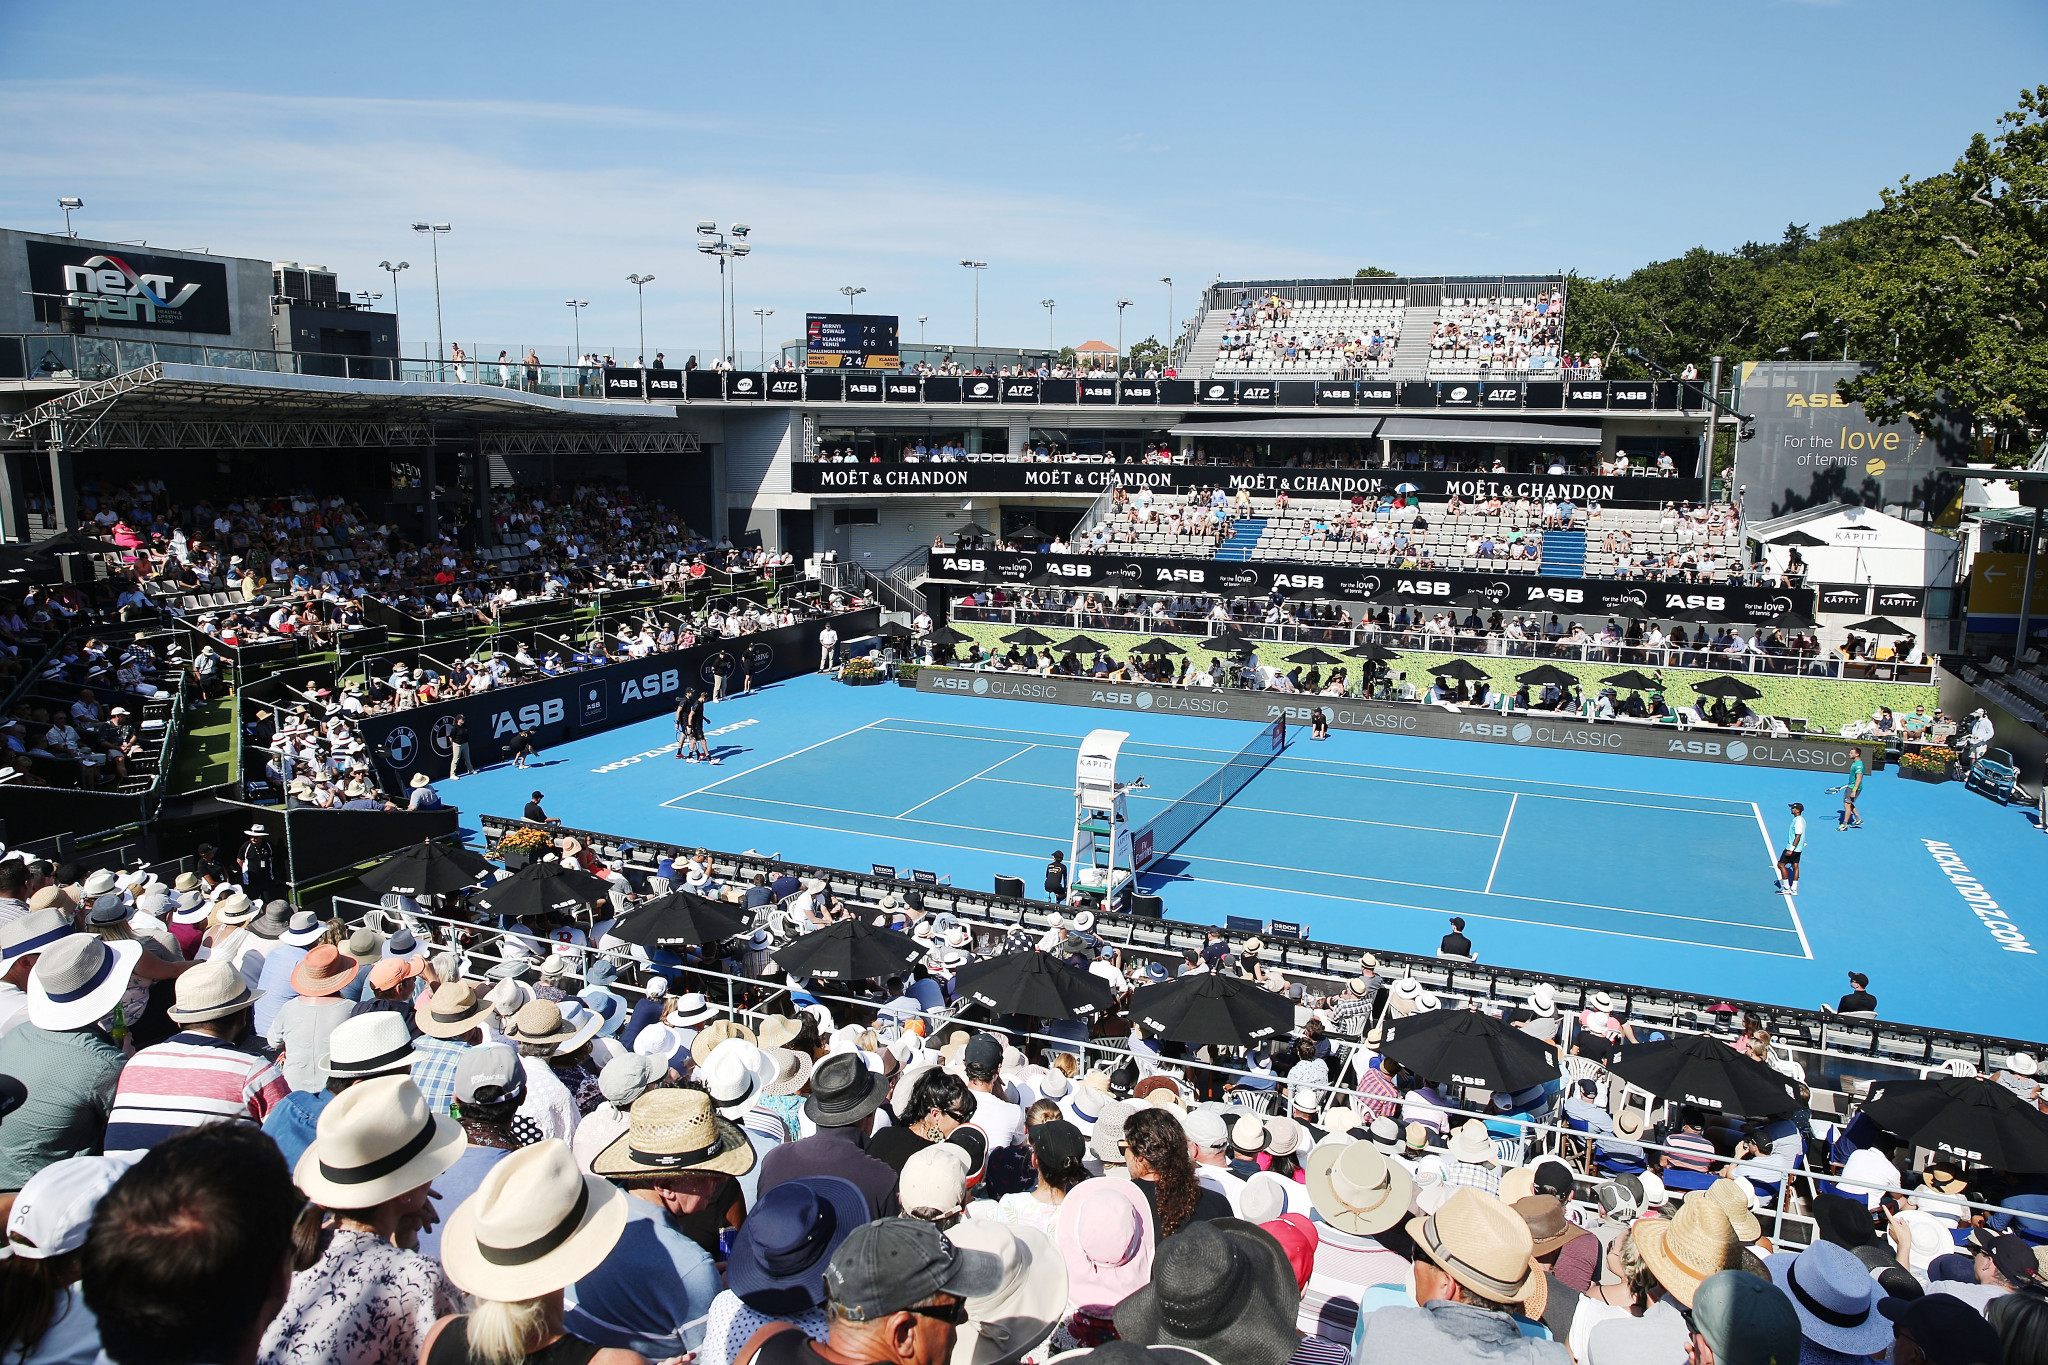 Netball NZ are looking into the possibility of converting the ASB Tennis Centre for the 2023 World Cup ©Getty Images